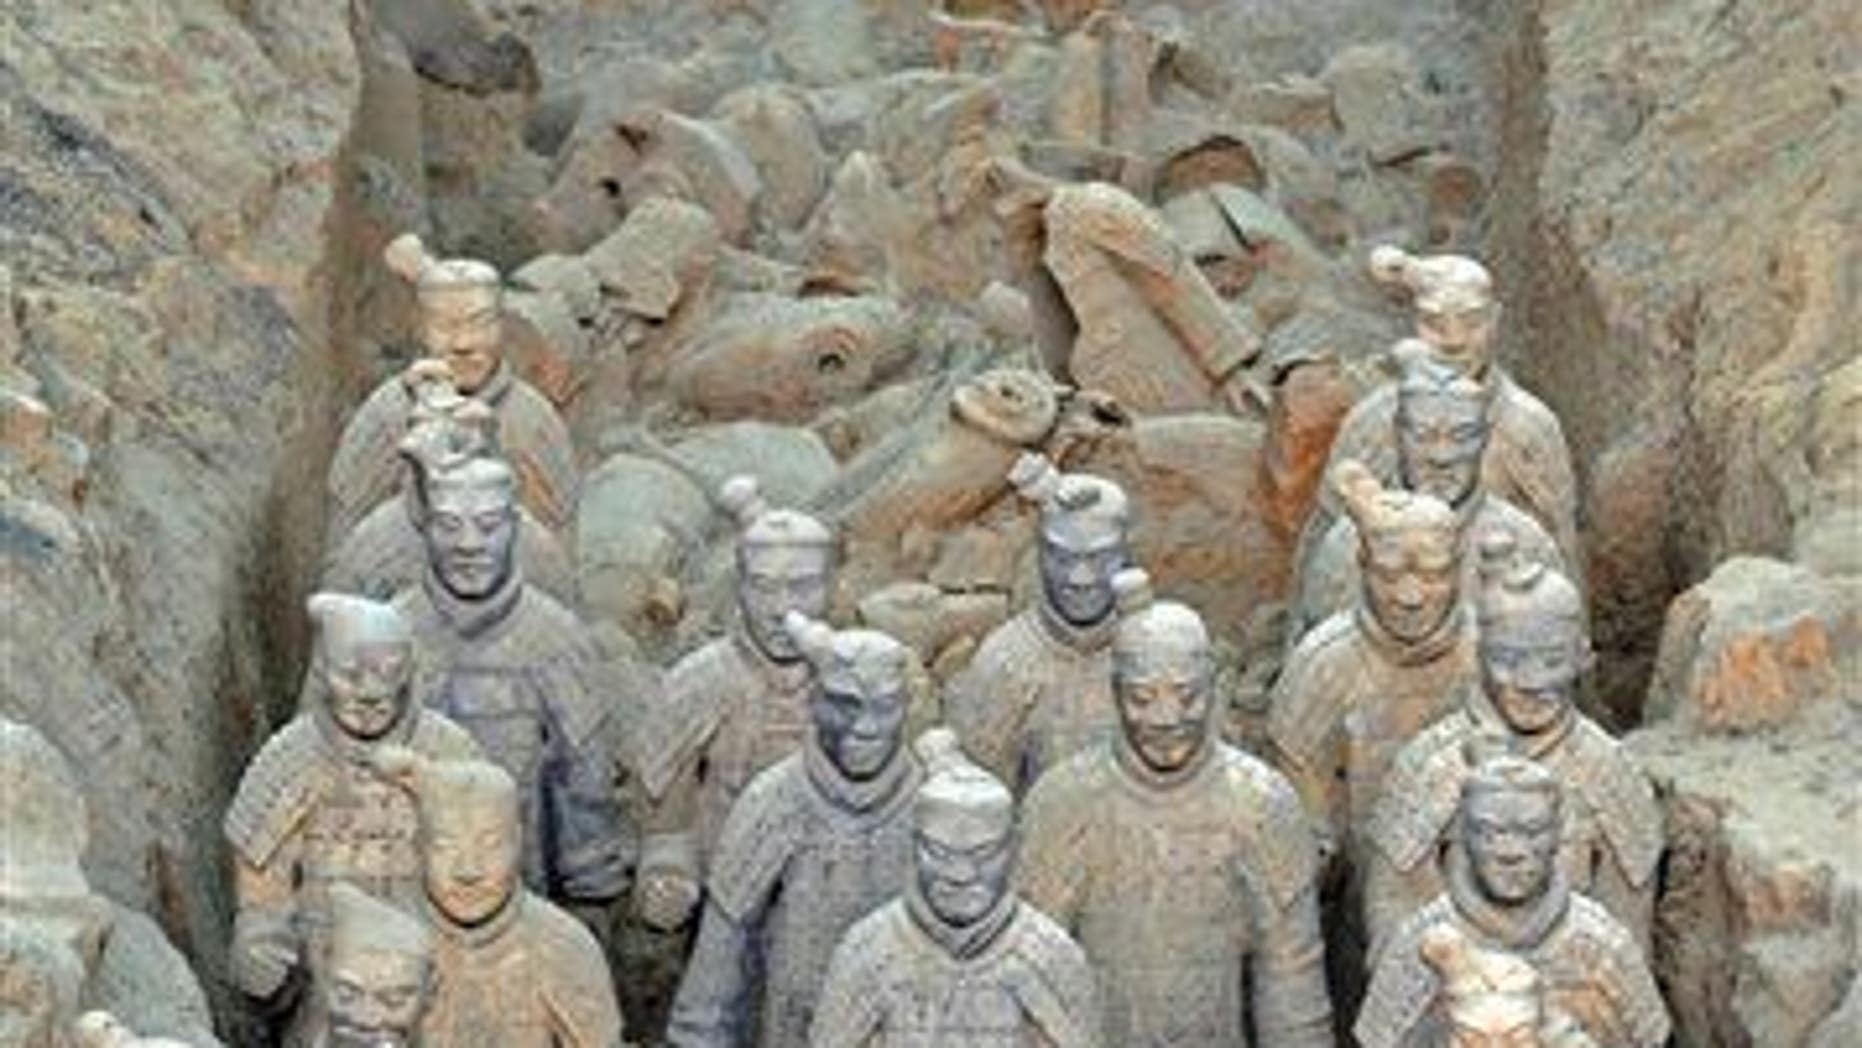 Life-sized sculptures of warriors stand upright in the pit where they were unearthed in 1974 in Xian, China, in this Oct. 16, 2004 file photo.